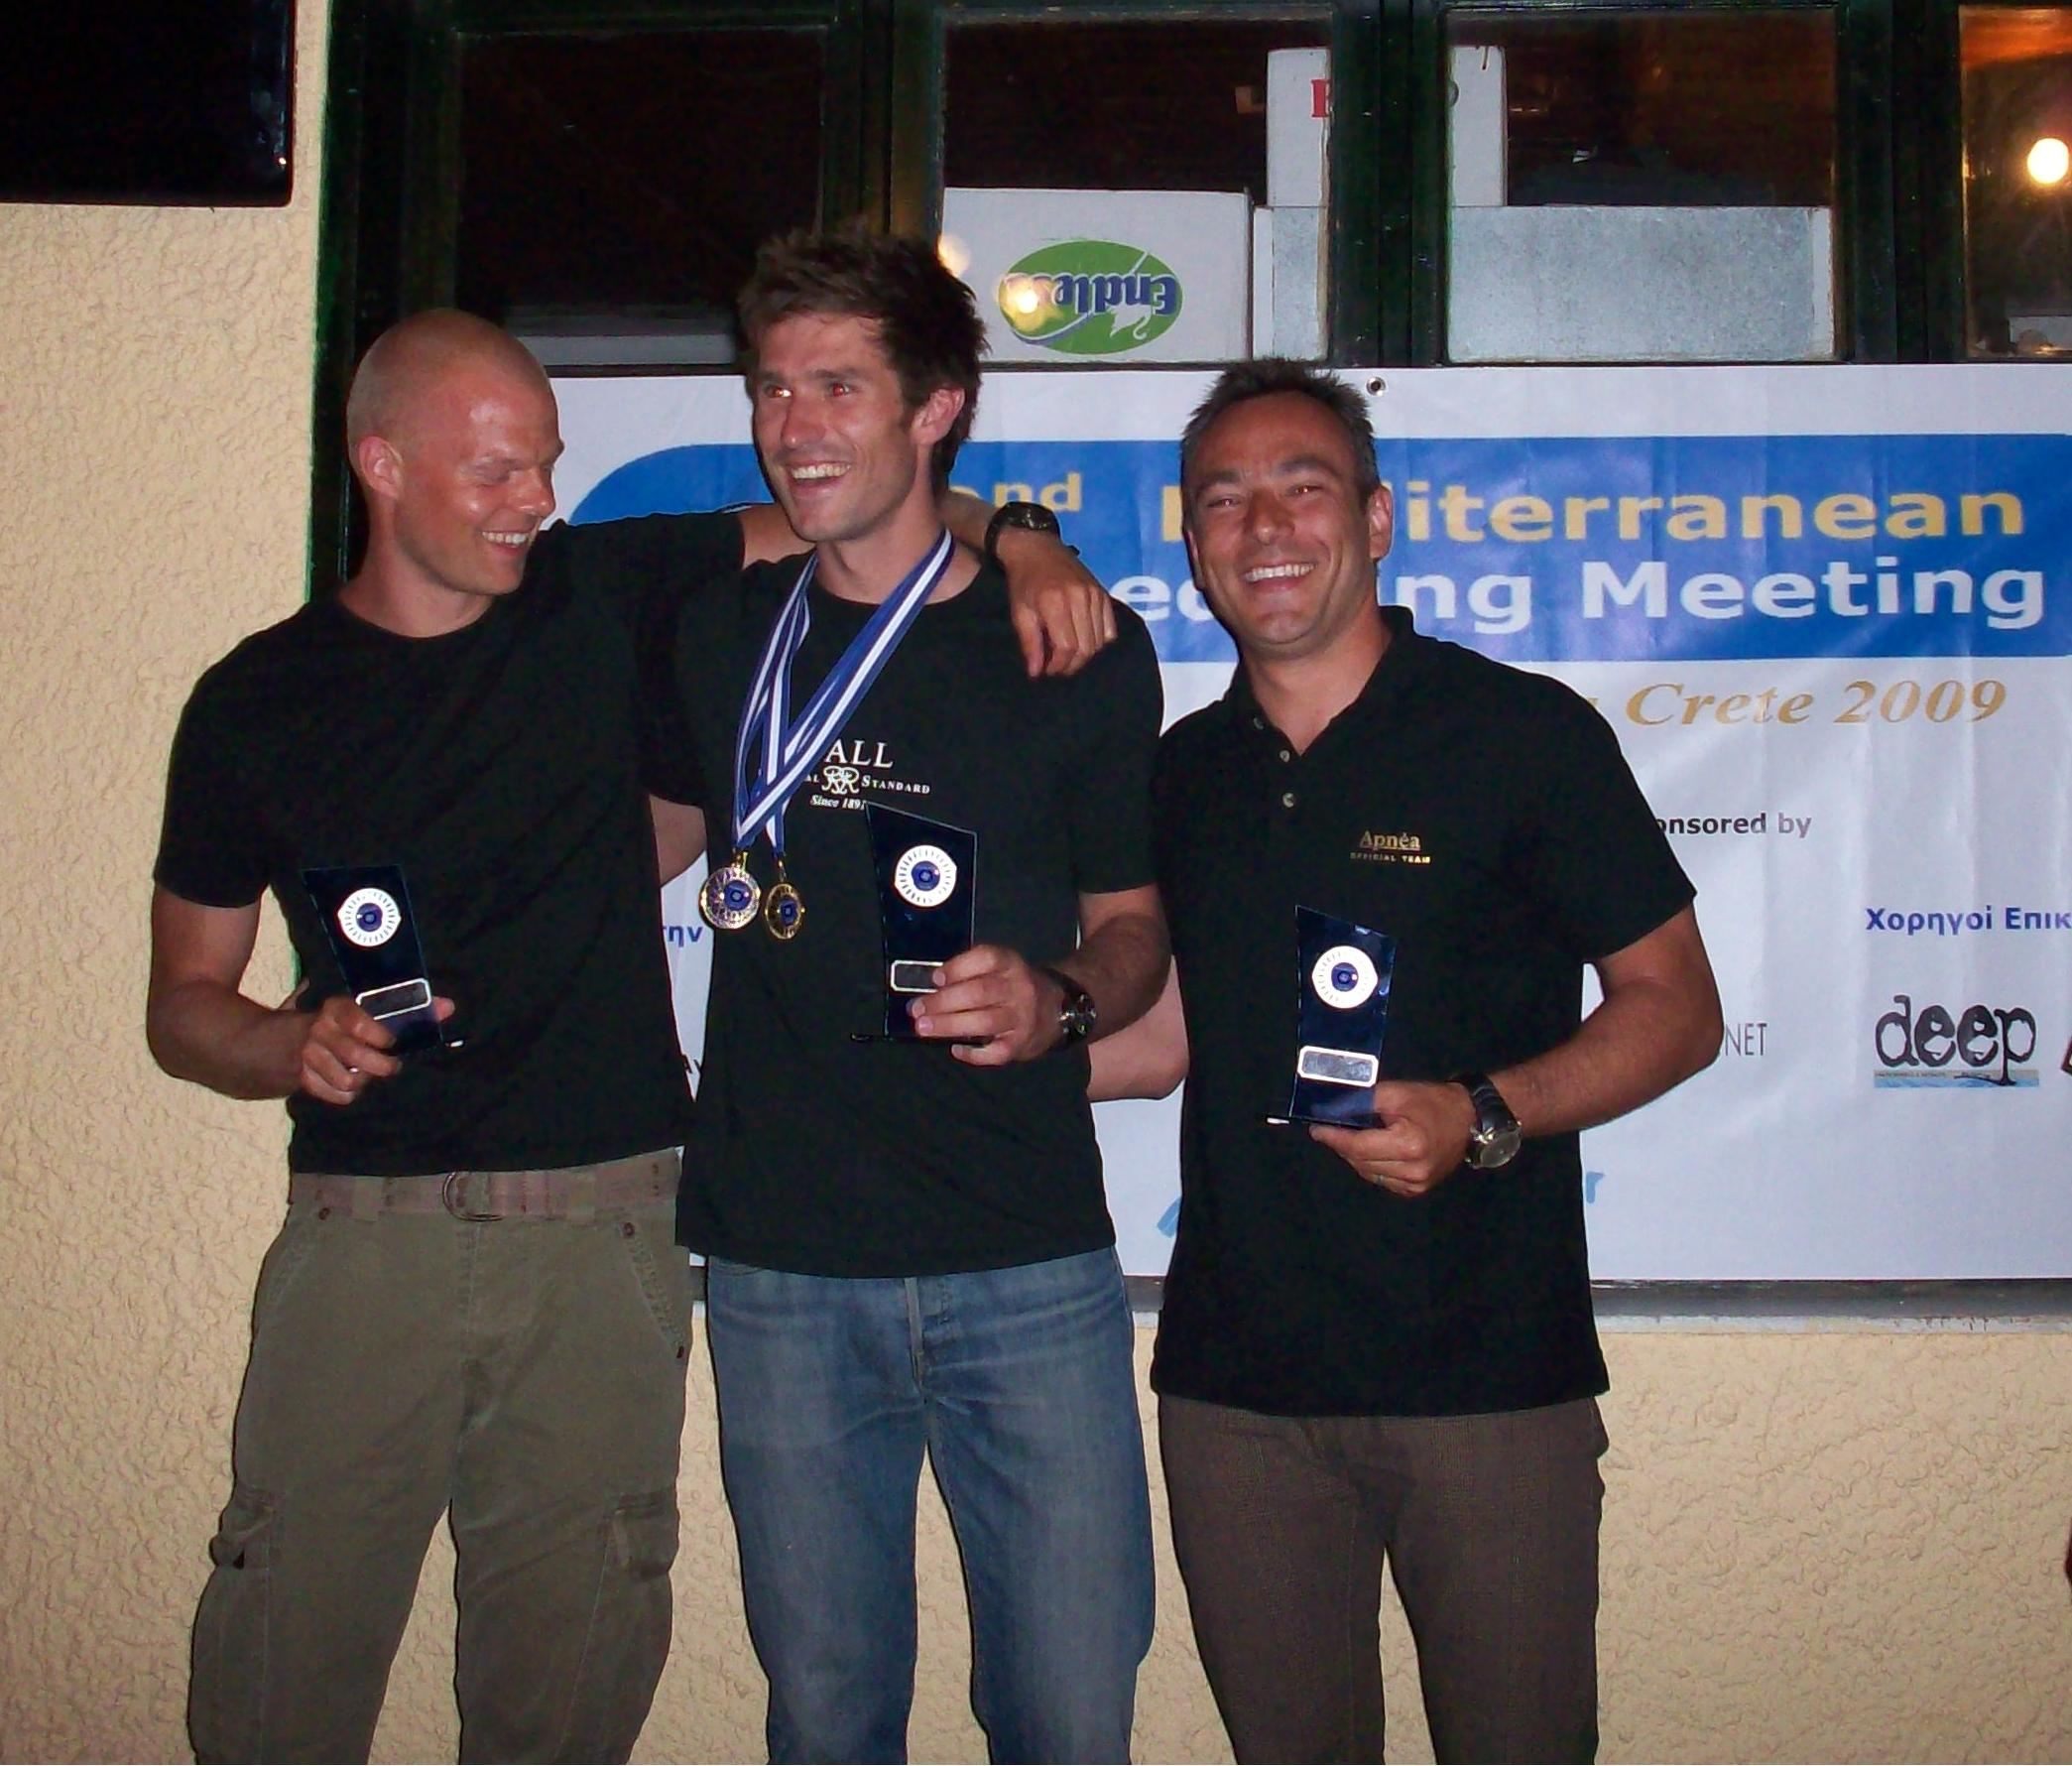 2nd place in freediving.jpg